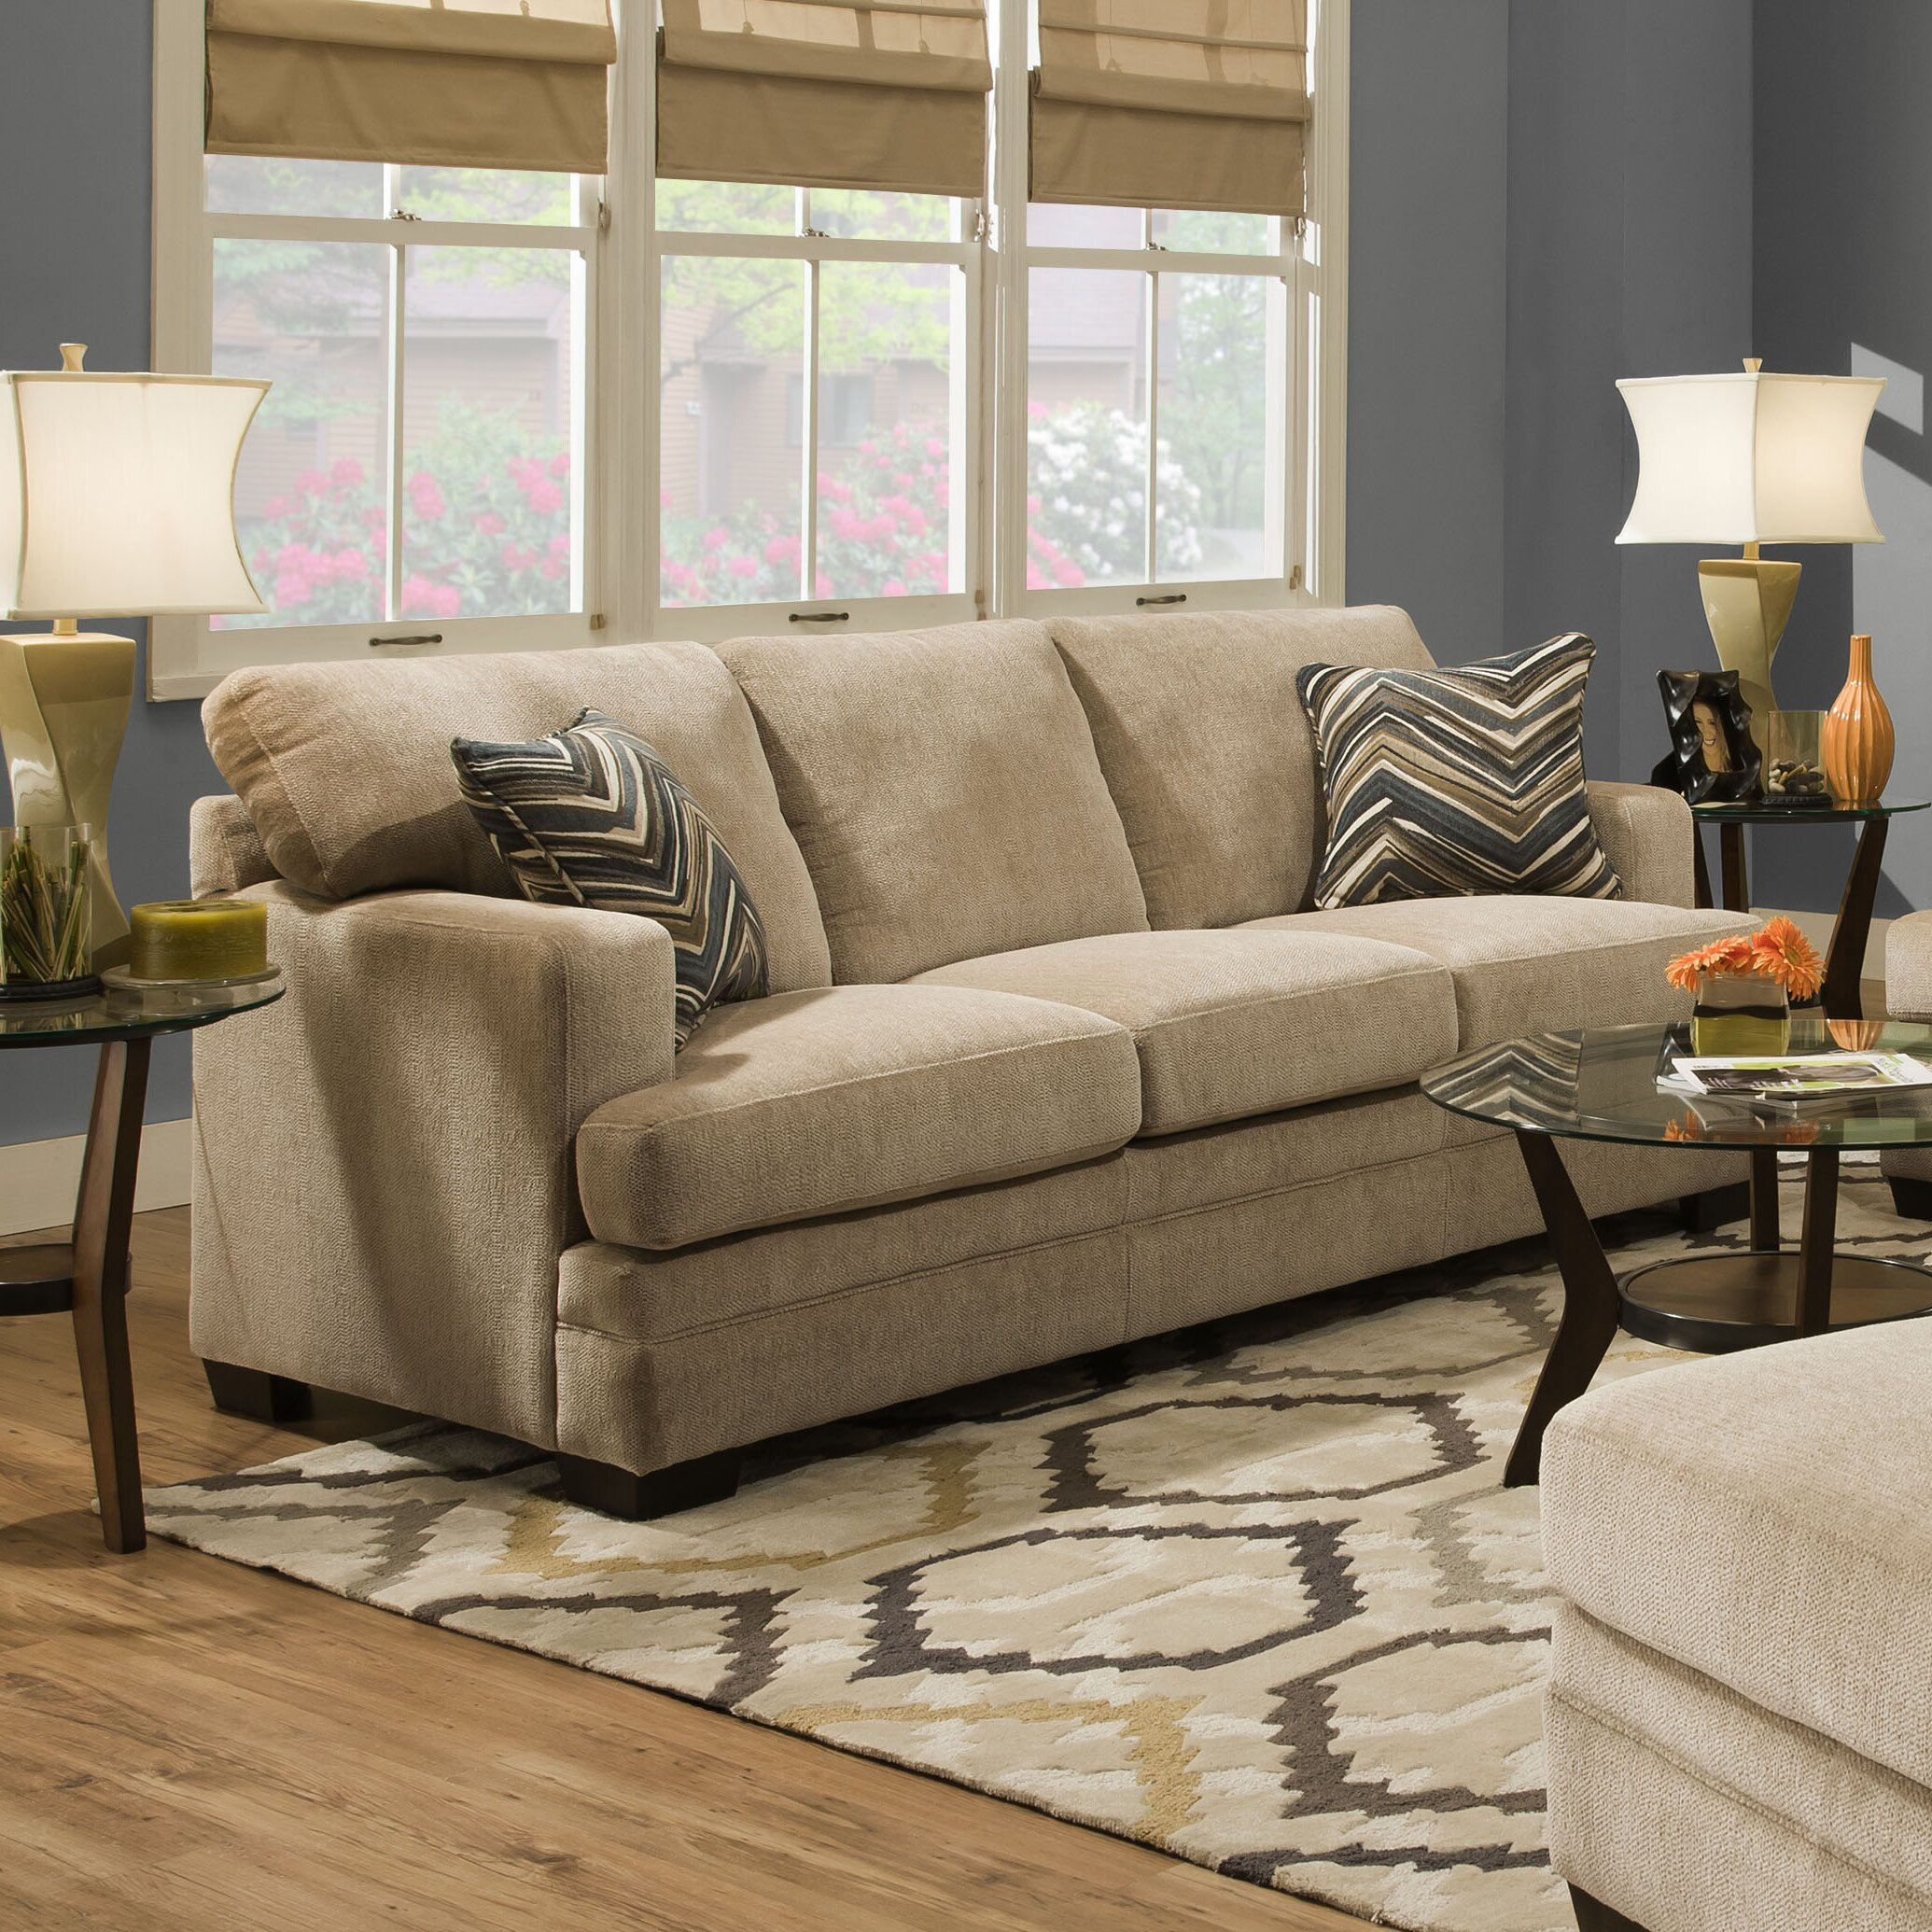 Simmons Velocity Sofa Review Brownsvilleclaimhelp